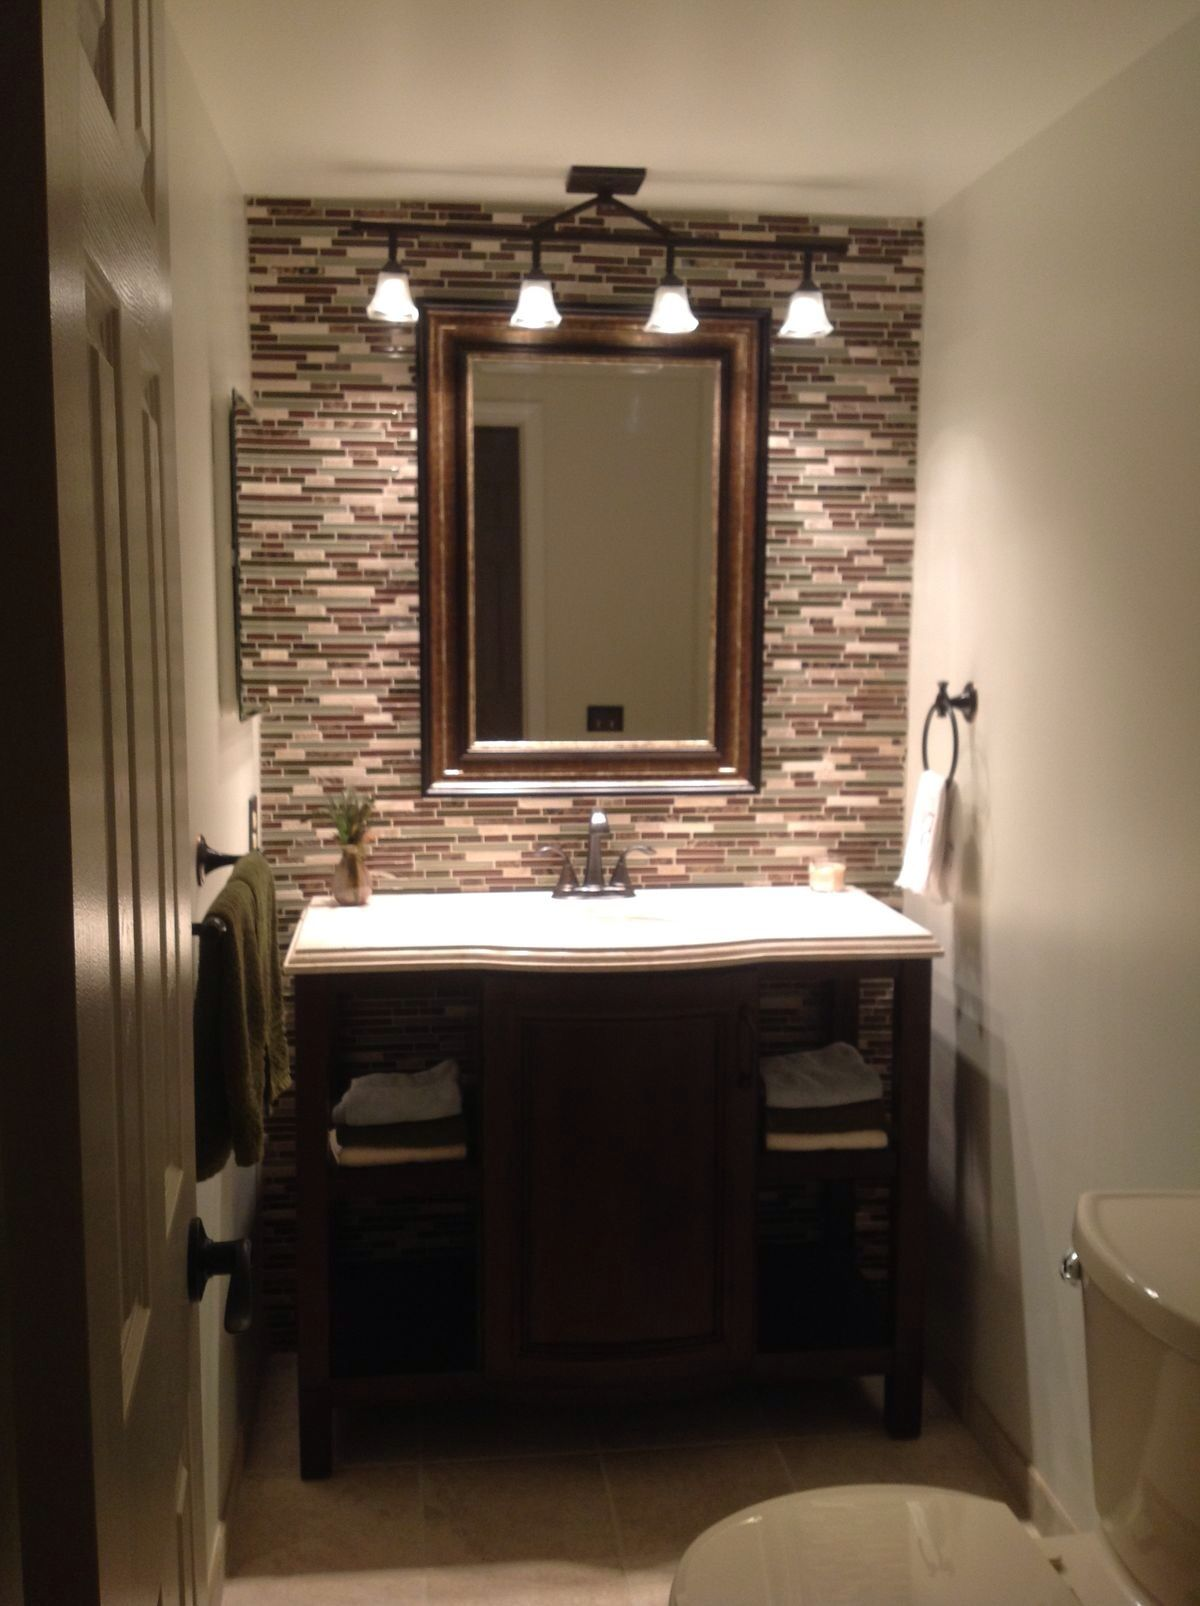 These Half Bathroom Remodeling Ideas Can Inspire A Transformation